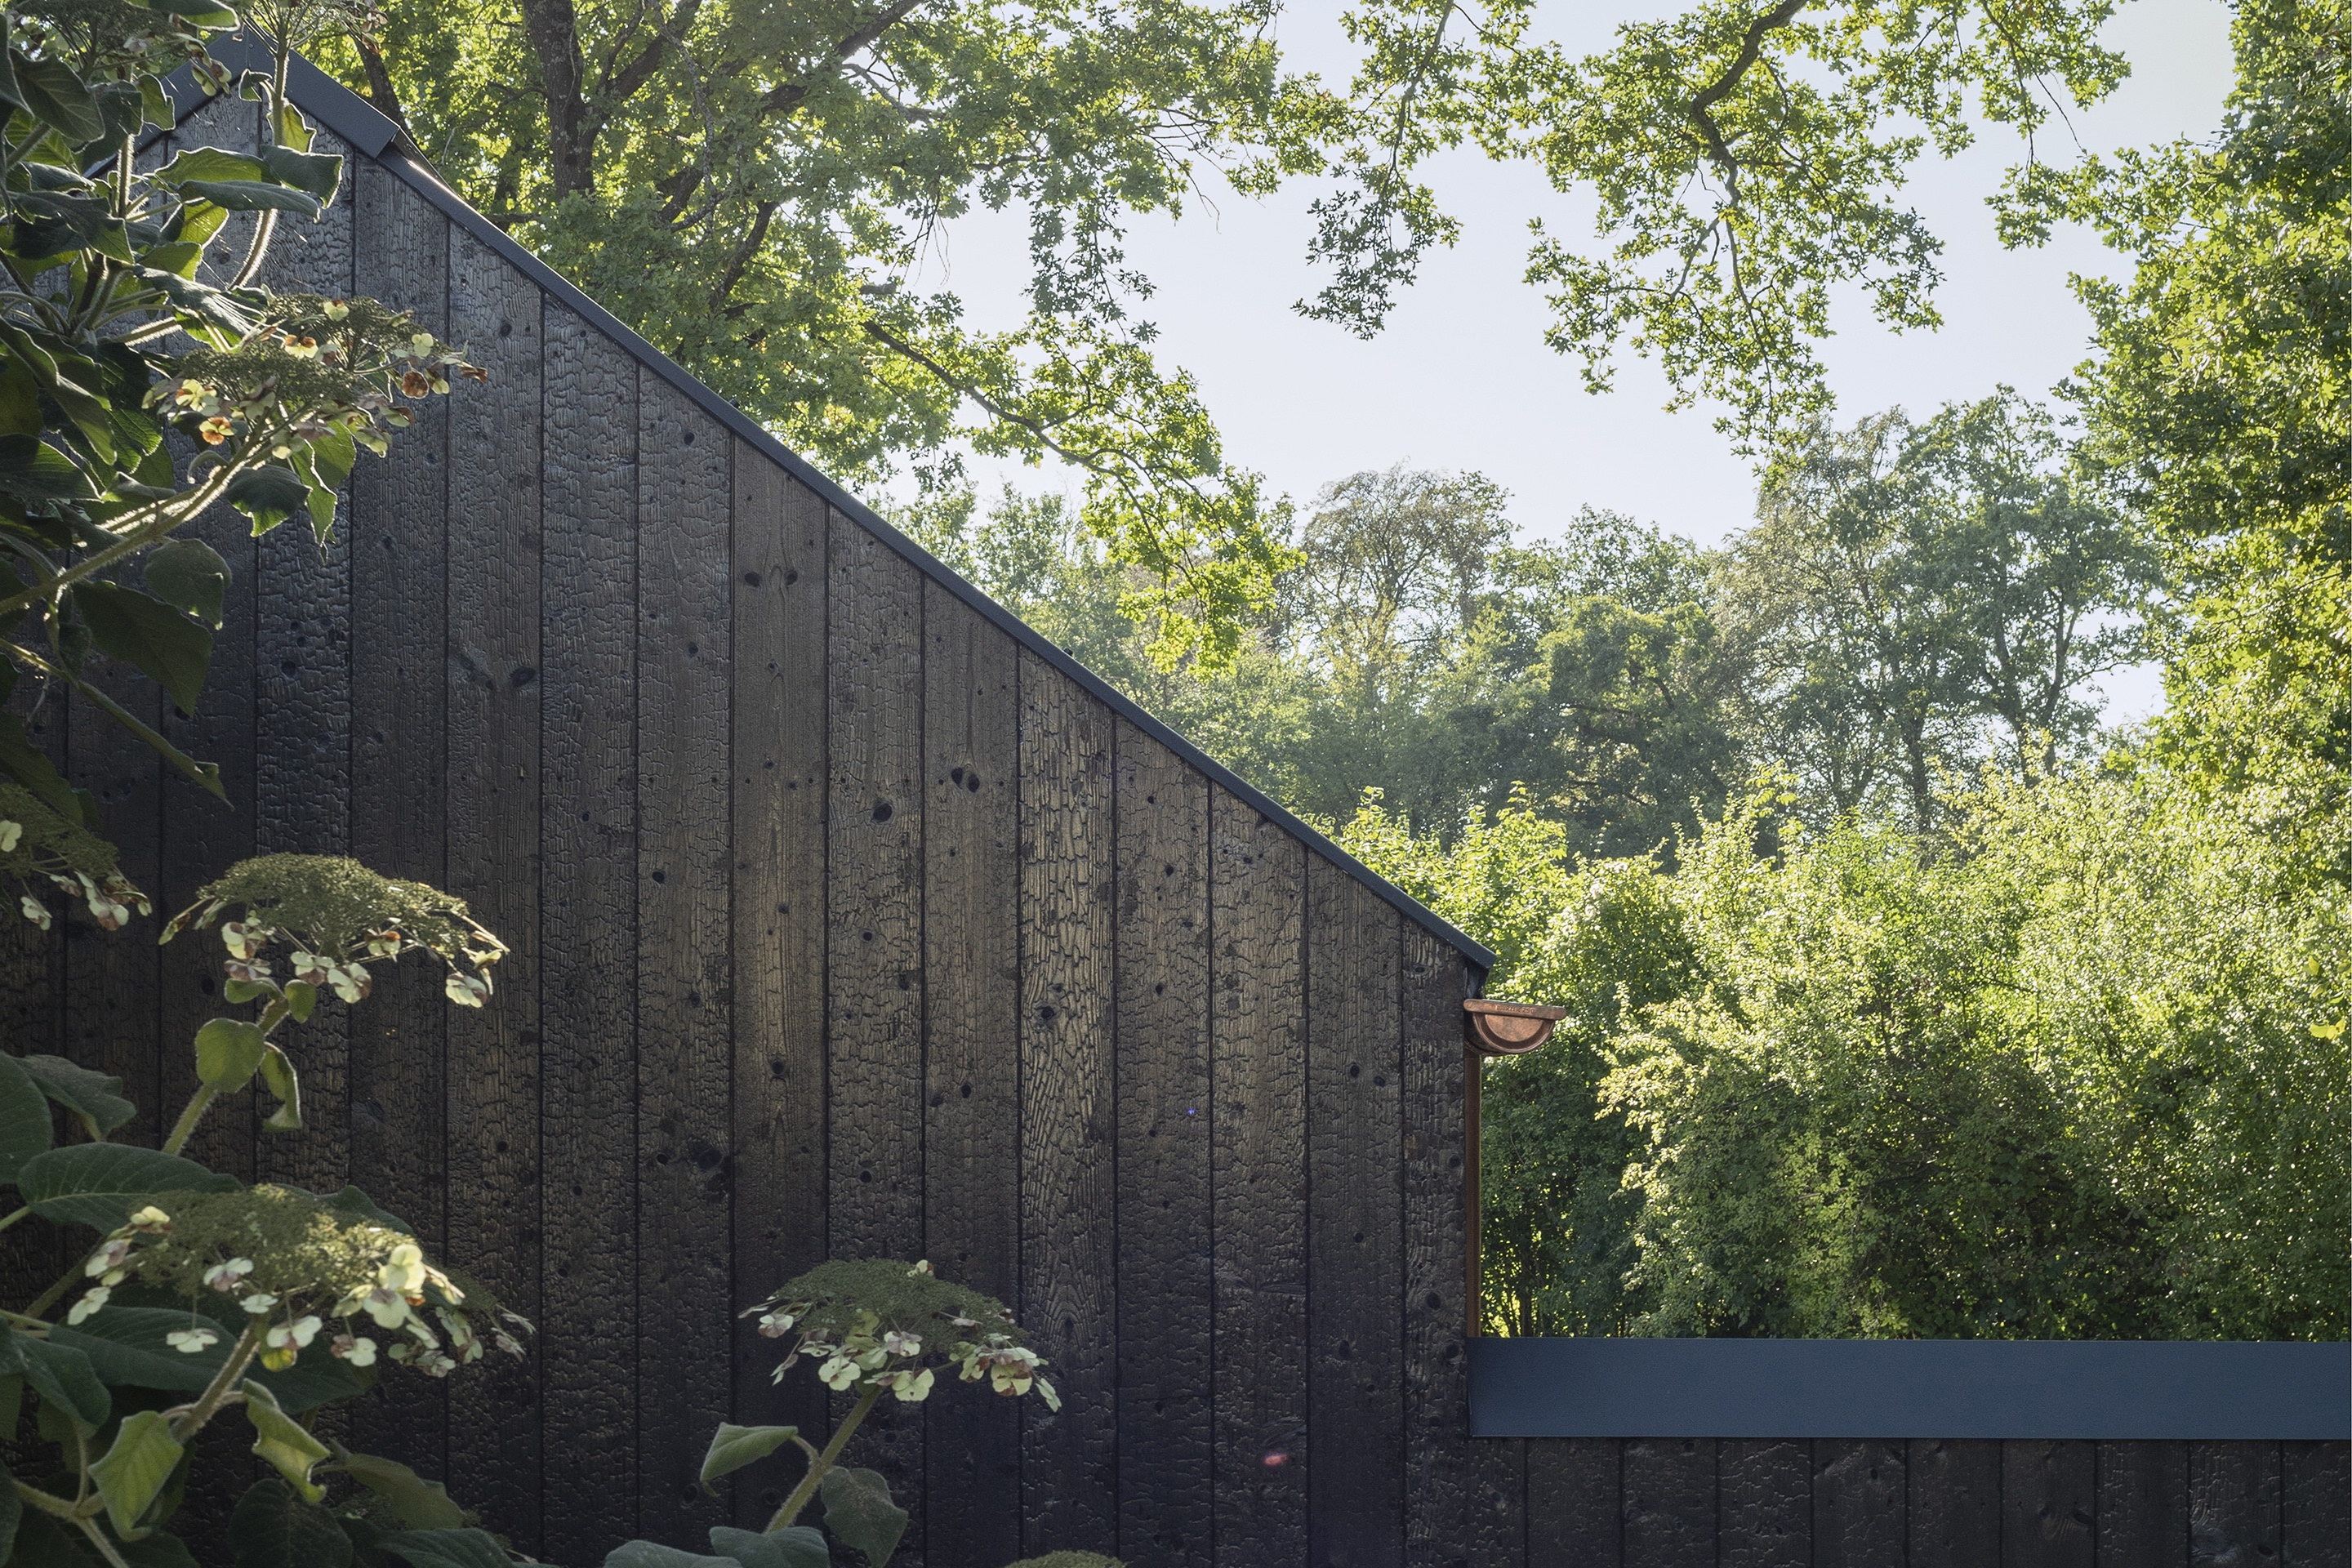 The Black House – Modular House by Buero Wagner